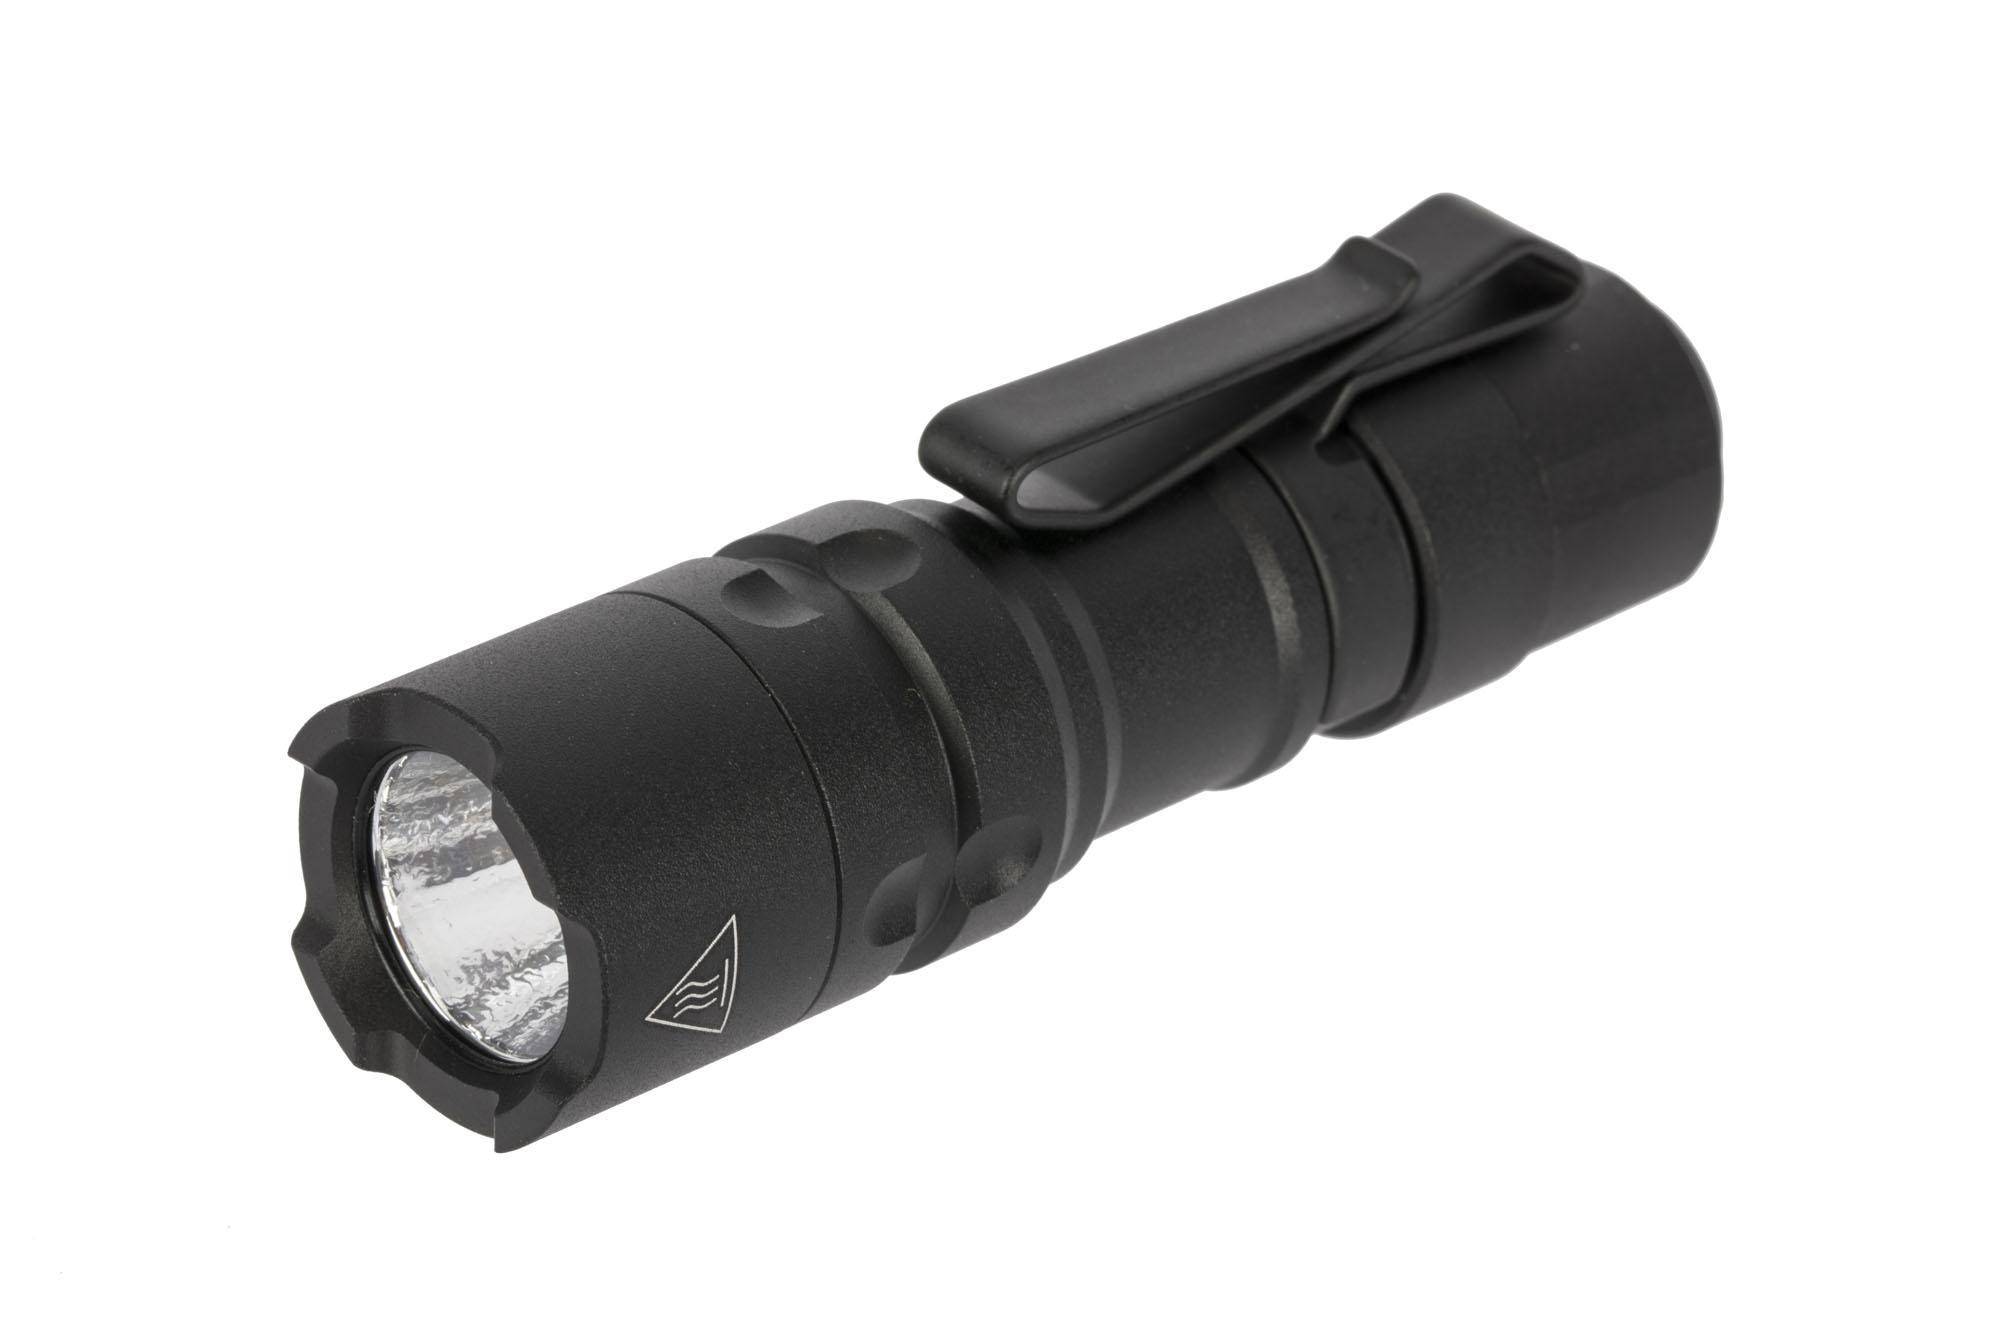 flashlight picture led s p focus of ultrafire tactical mini zoom light torch